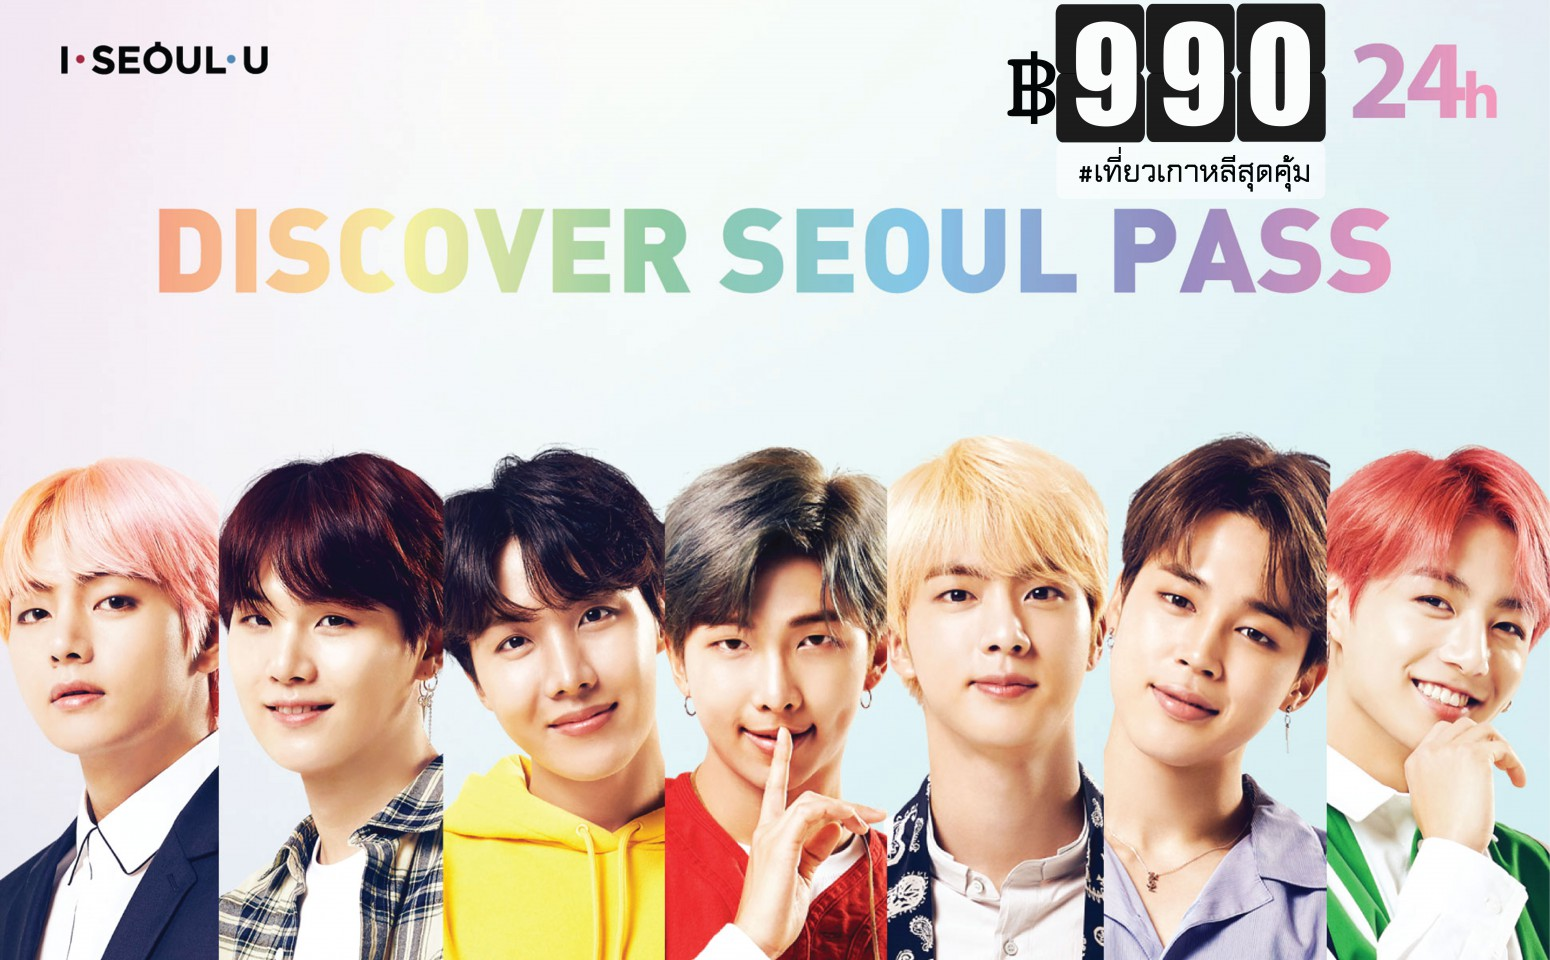 Discover Seoul Pass-990